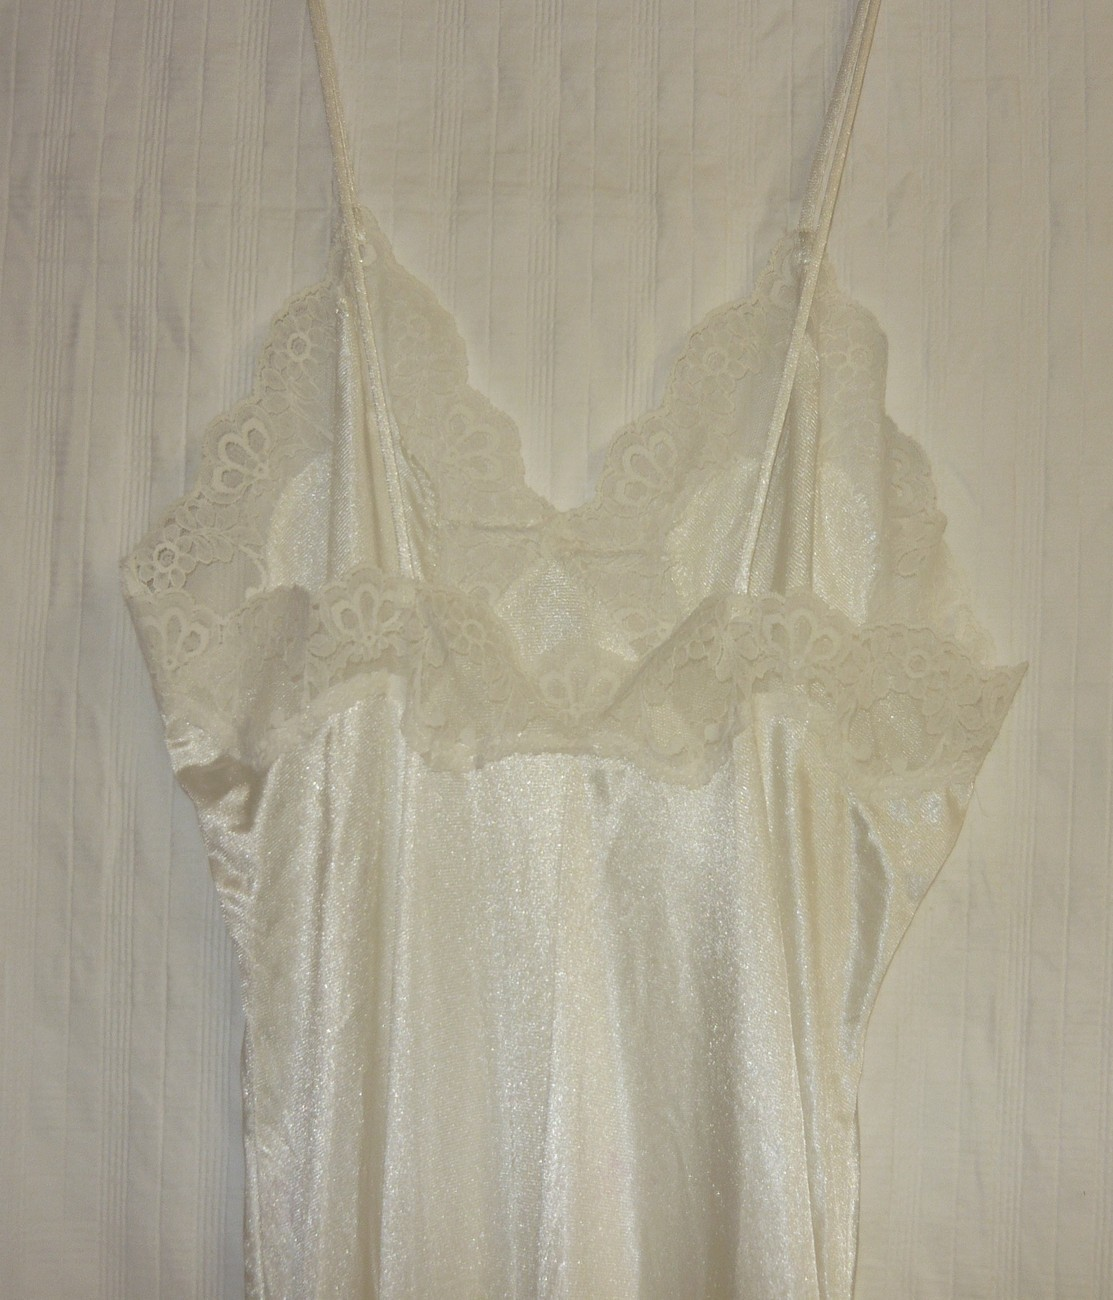 White Vintage Lace Trimmed Nightgown sz.S